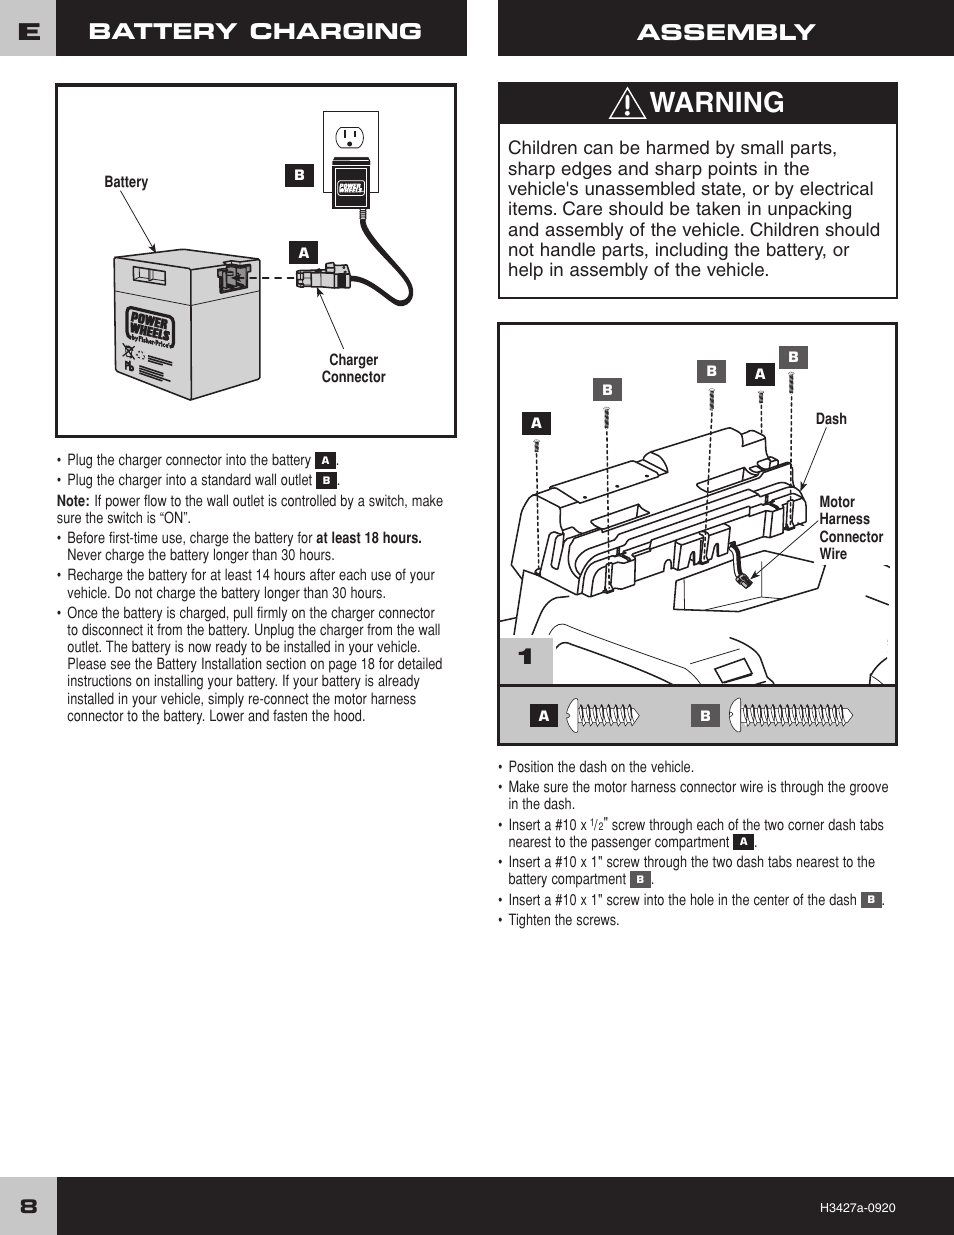 medium resolution of warning 1assembly battery charging fisher price barbie jammin jeep h3427 user manual page 8 28